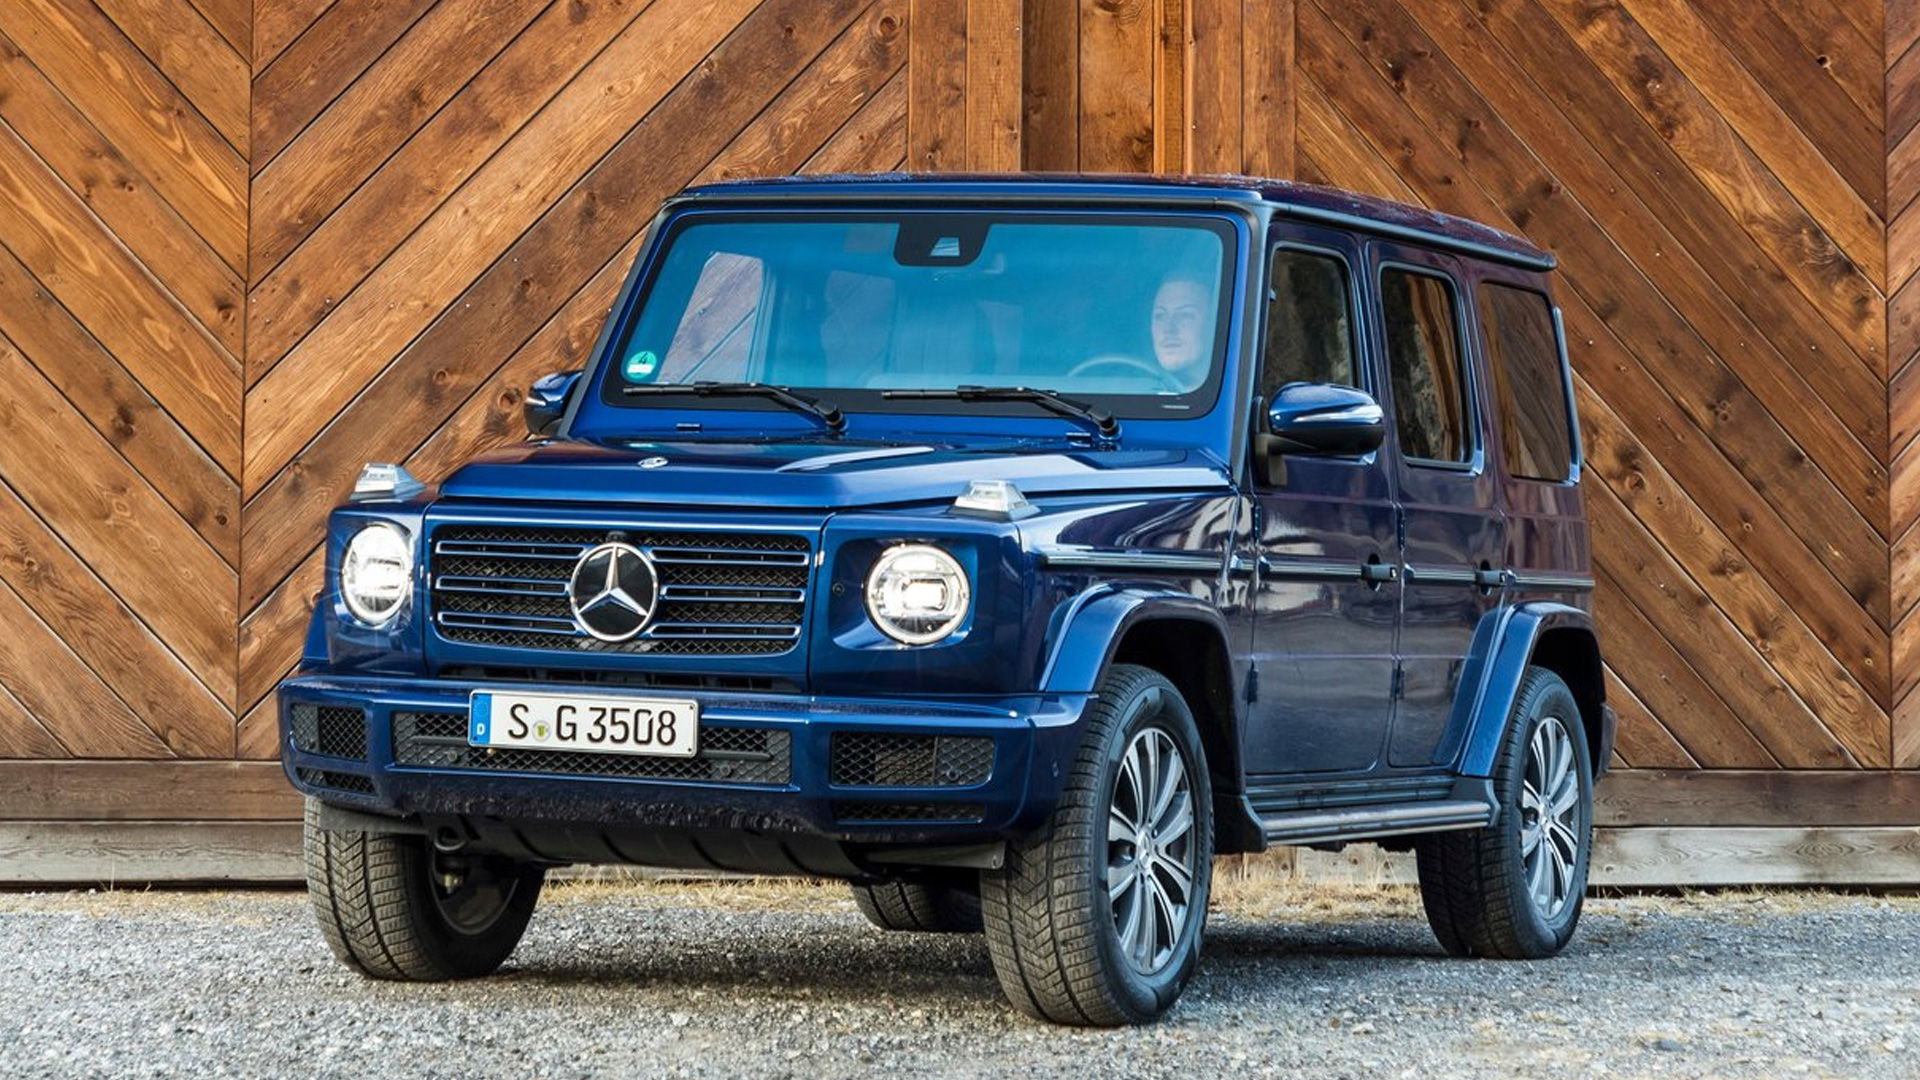 Mercedes Benz G Class 2019 350d Price Mileage Reviews Specification Gallery Overdrive